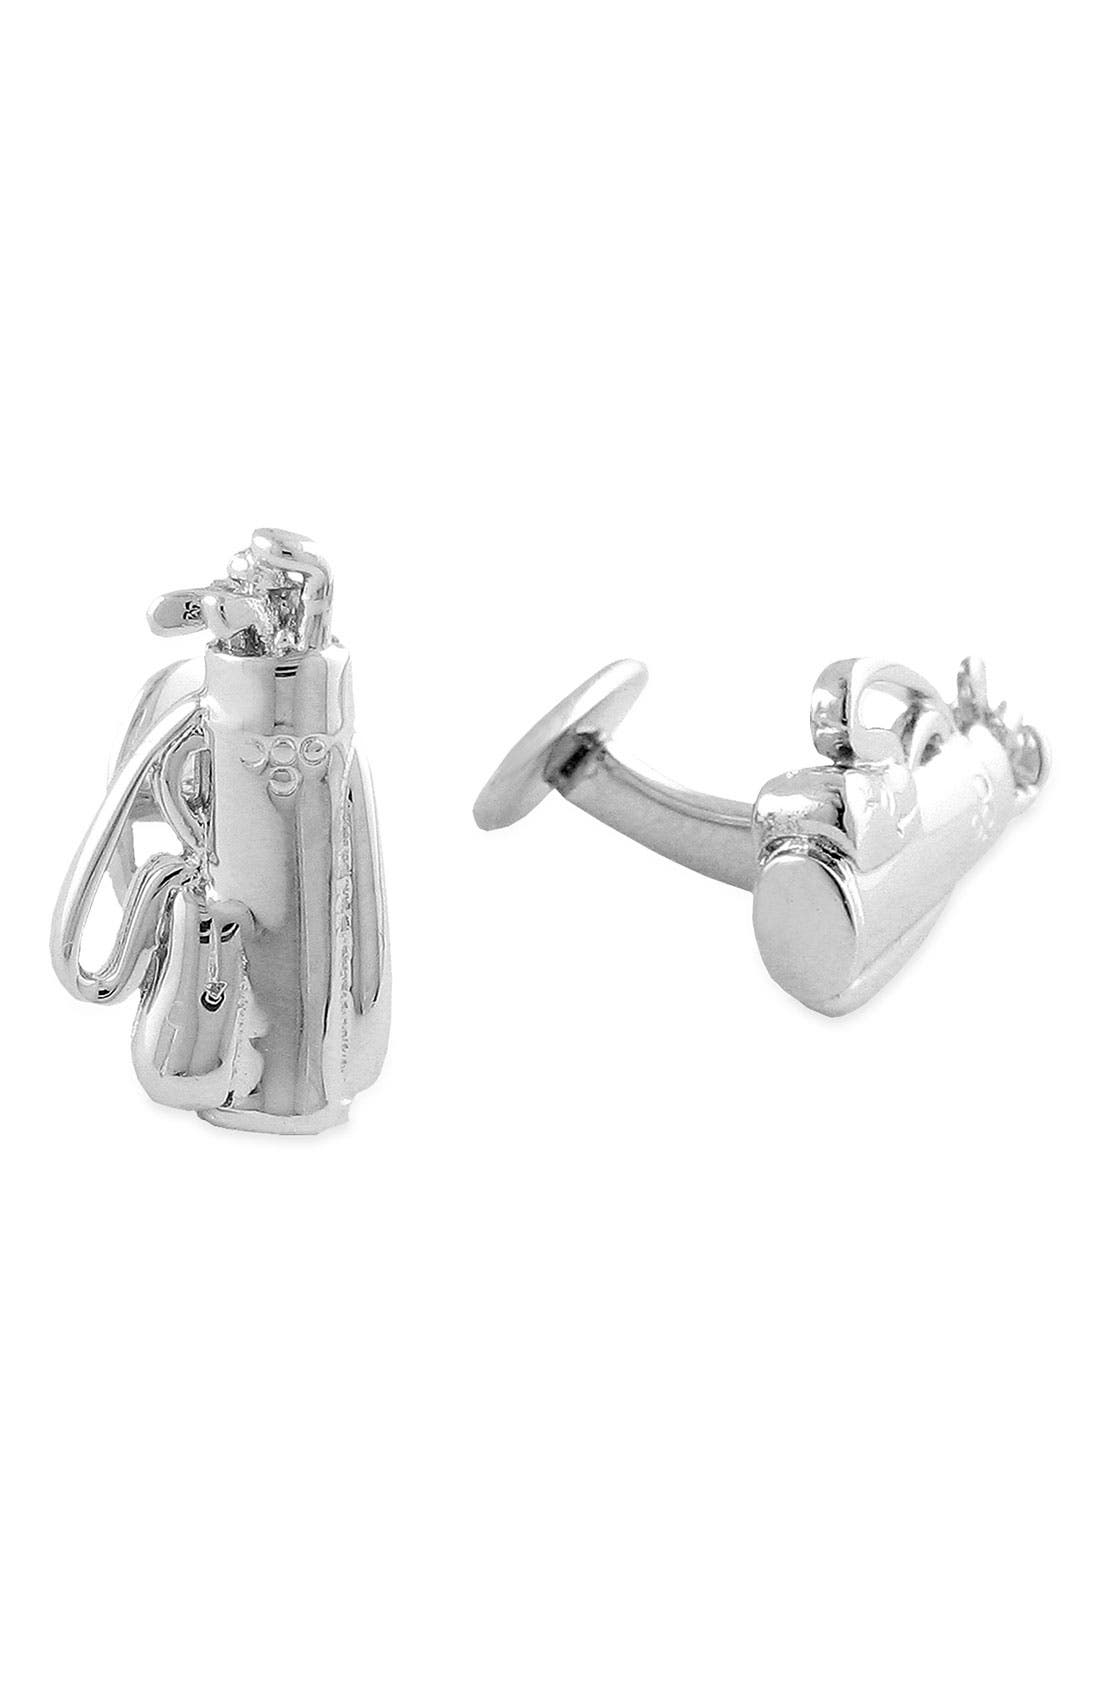 'Golf' Sterling Silver Cuff Links,                         Main,                         color, Silver